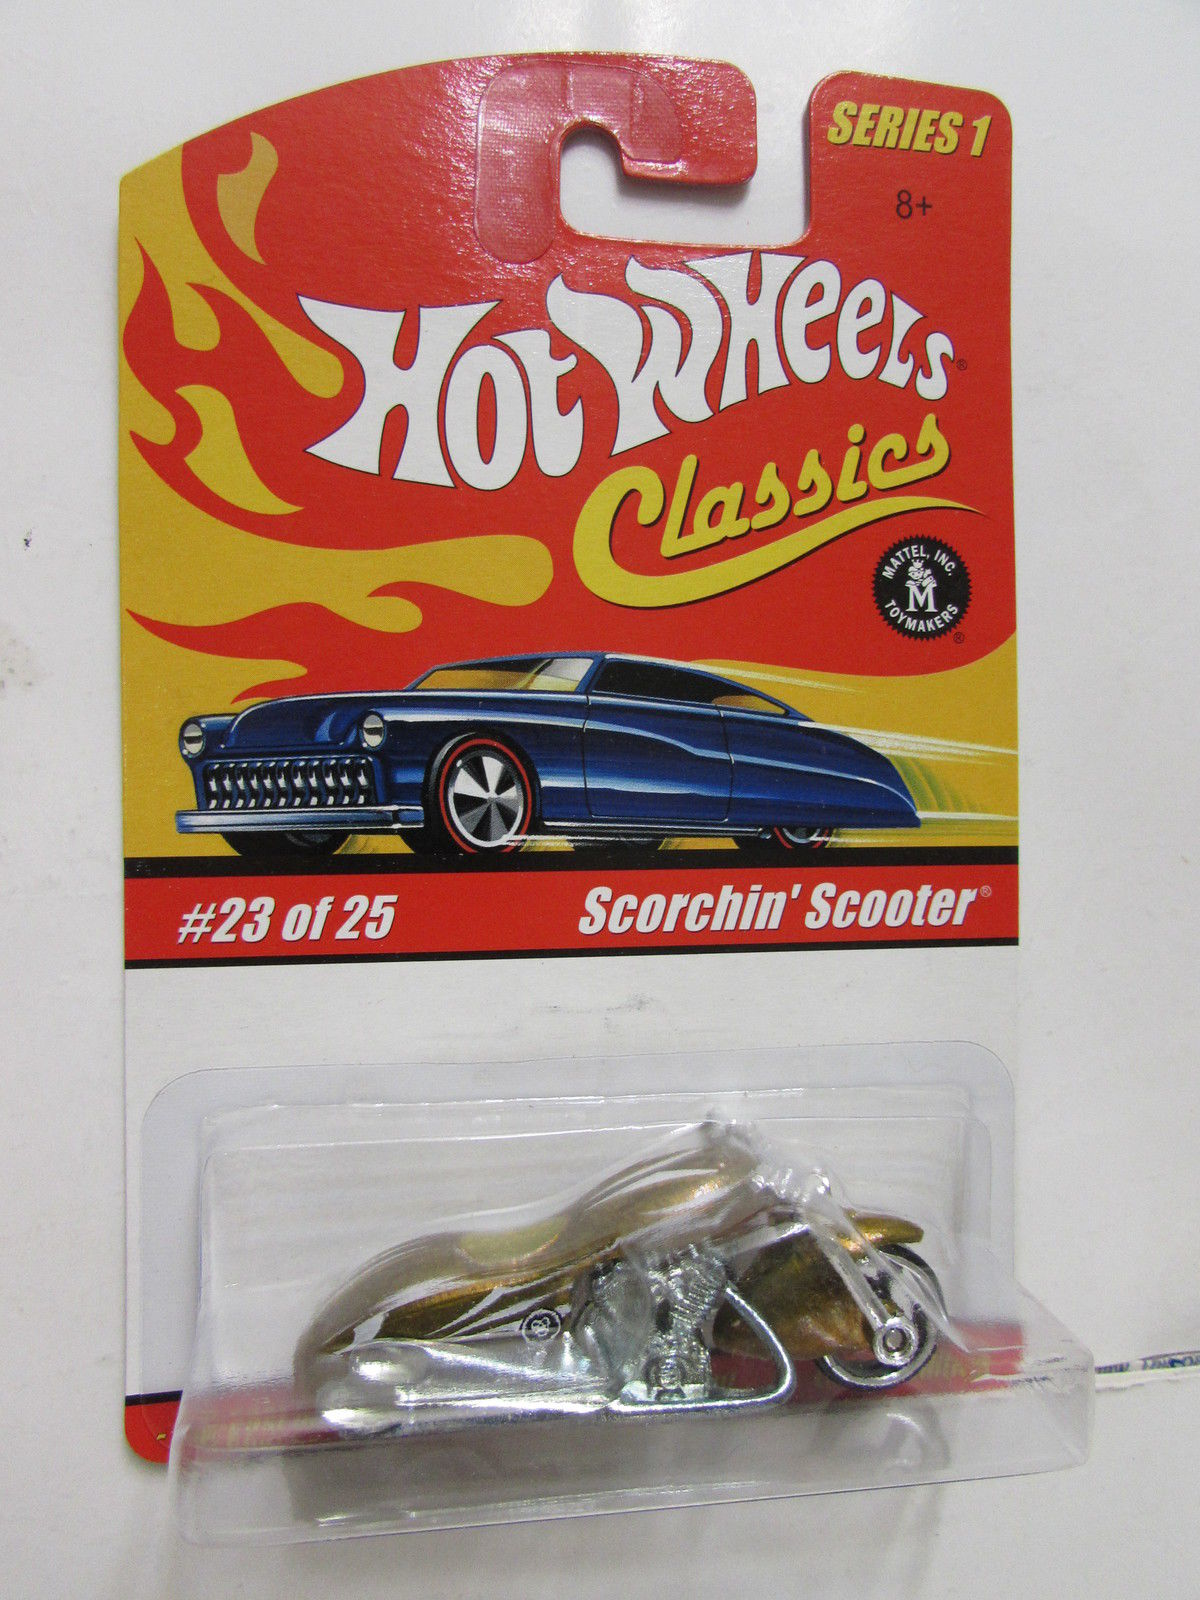 HOT WHEELS CLASSICS SERIES 1 #23/25 SCORCHIN SCOOTER GOLD